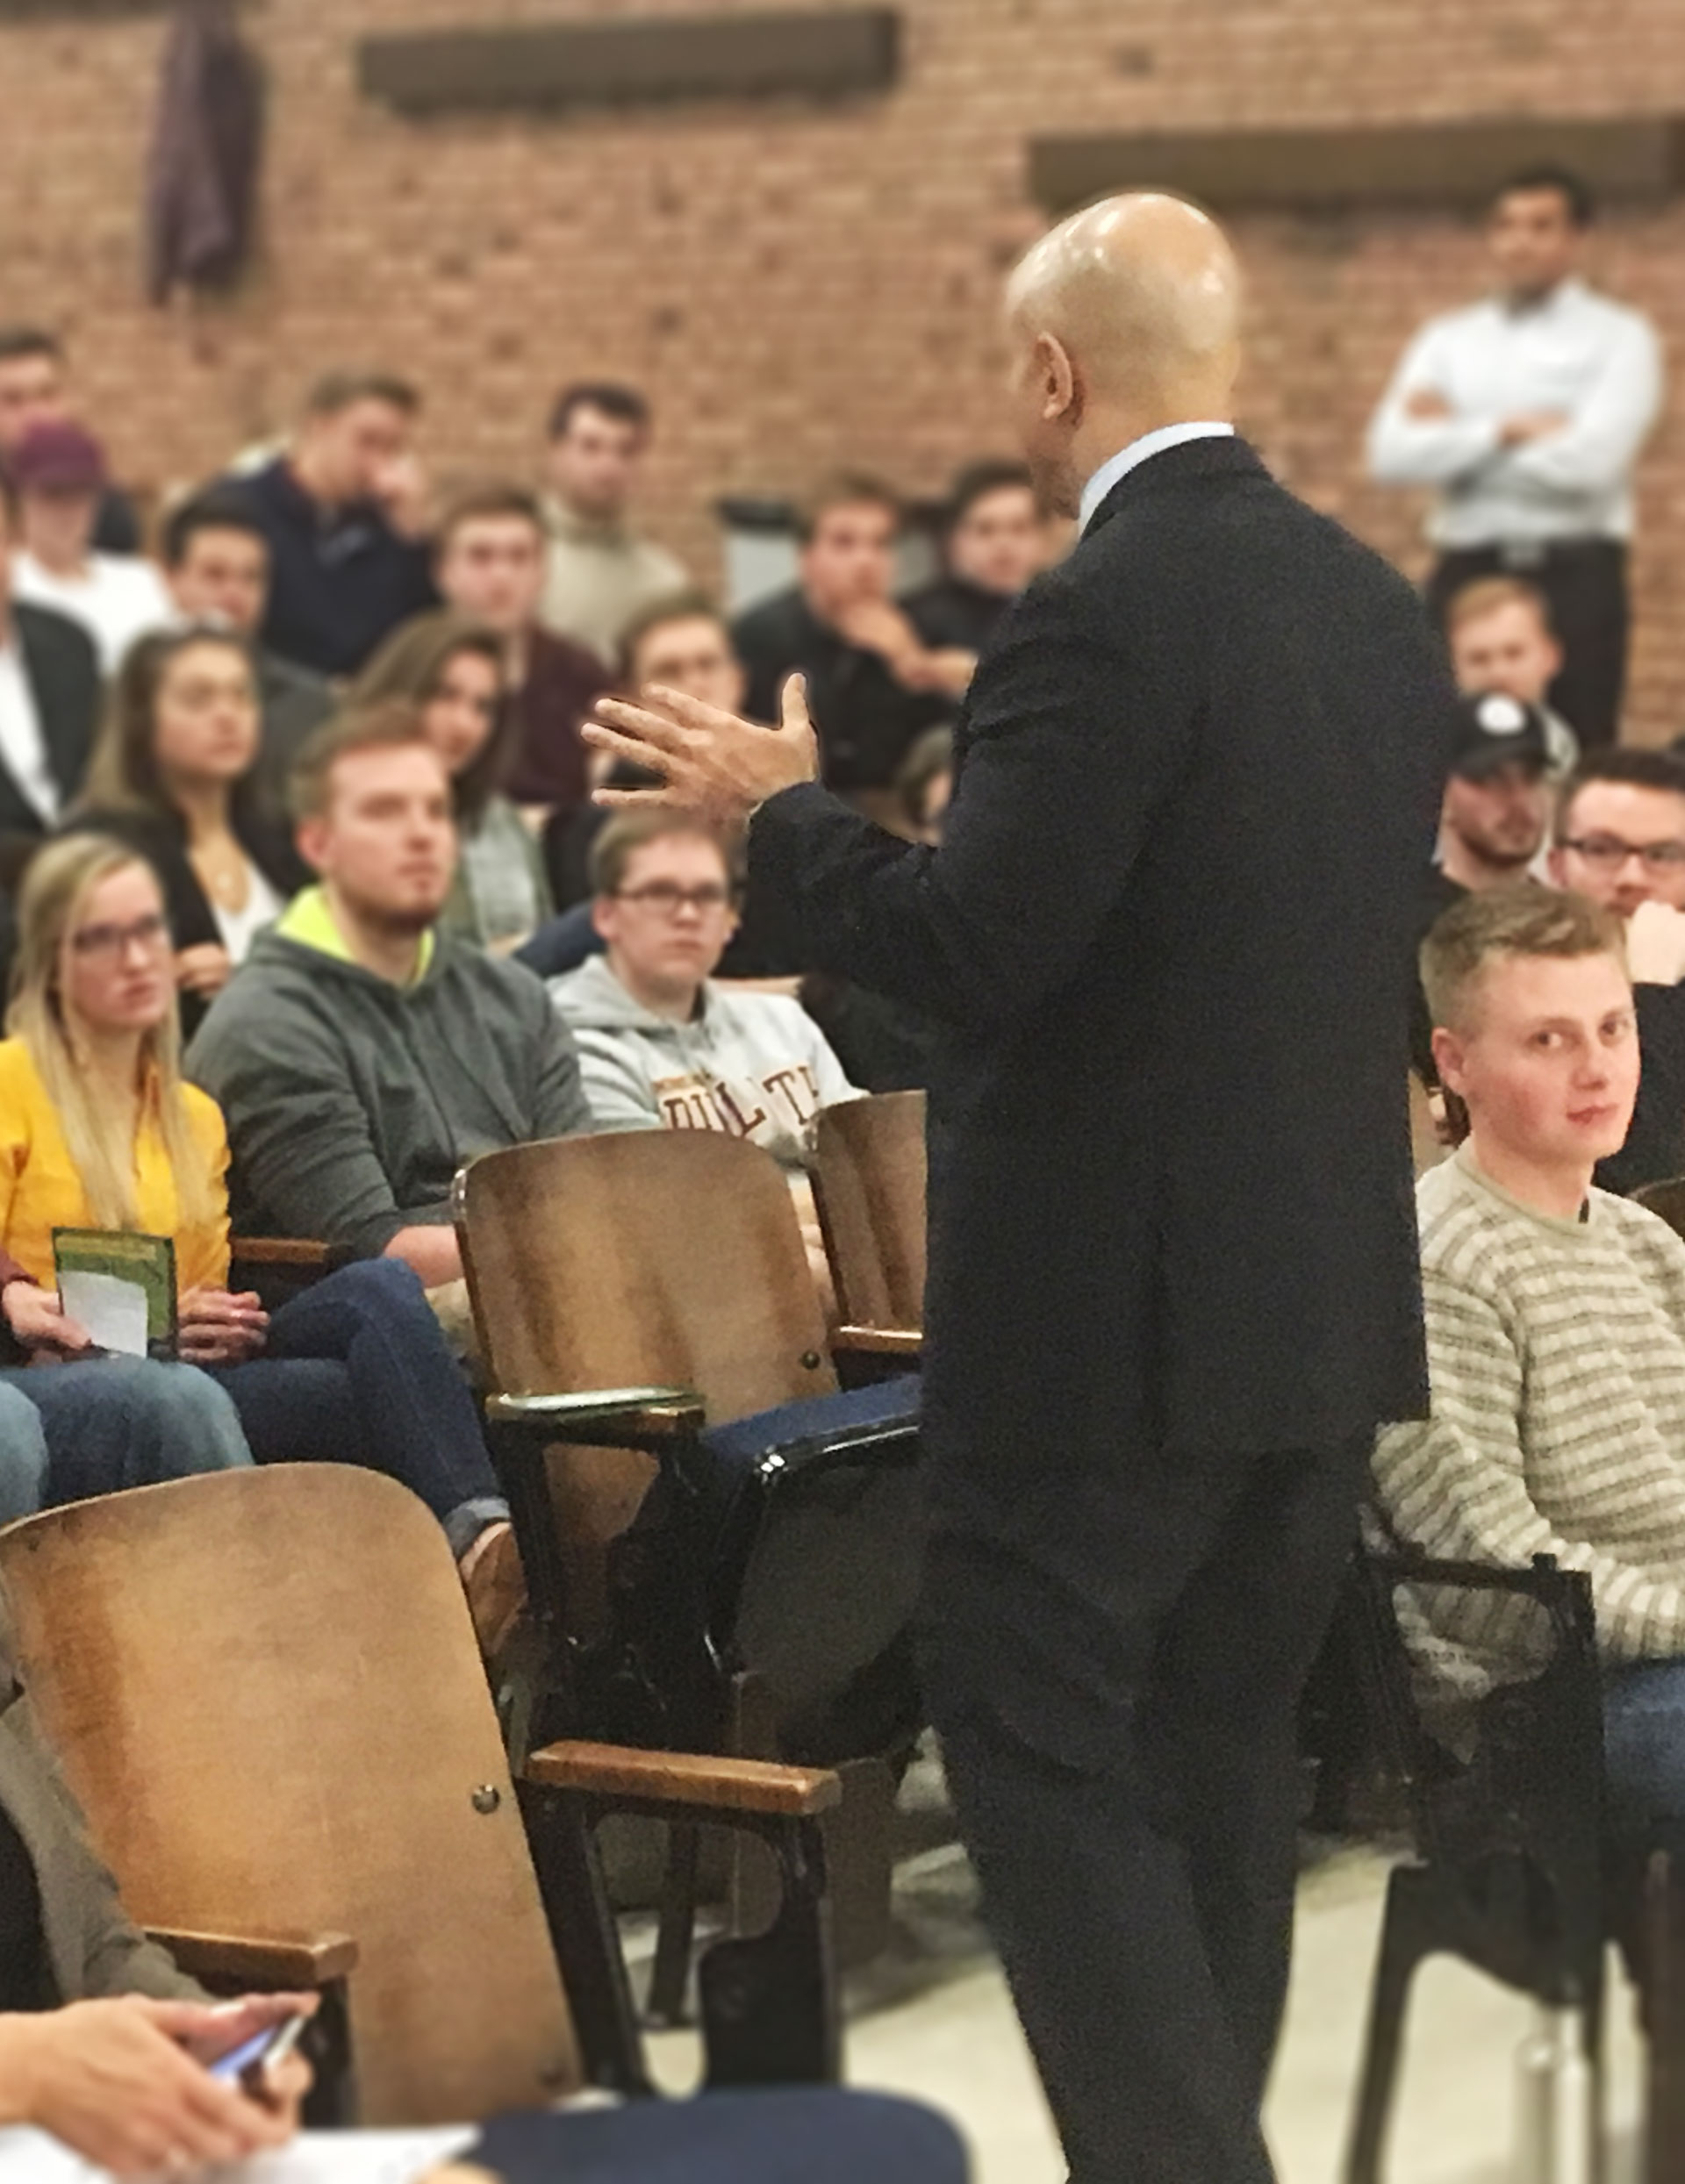 Neel Kashkari speaking to a lecture hall of students